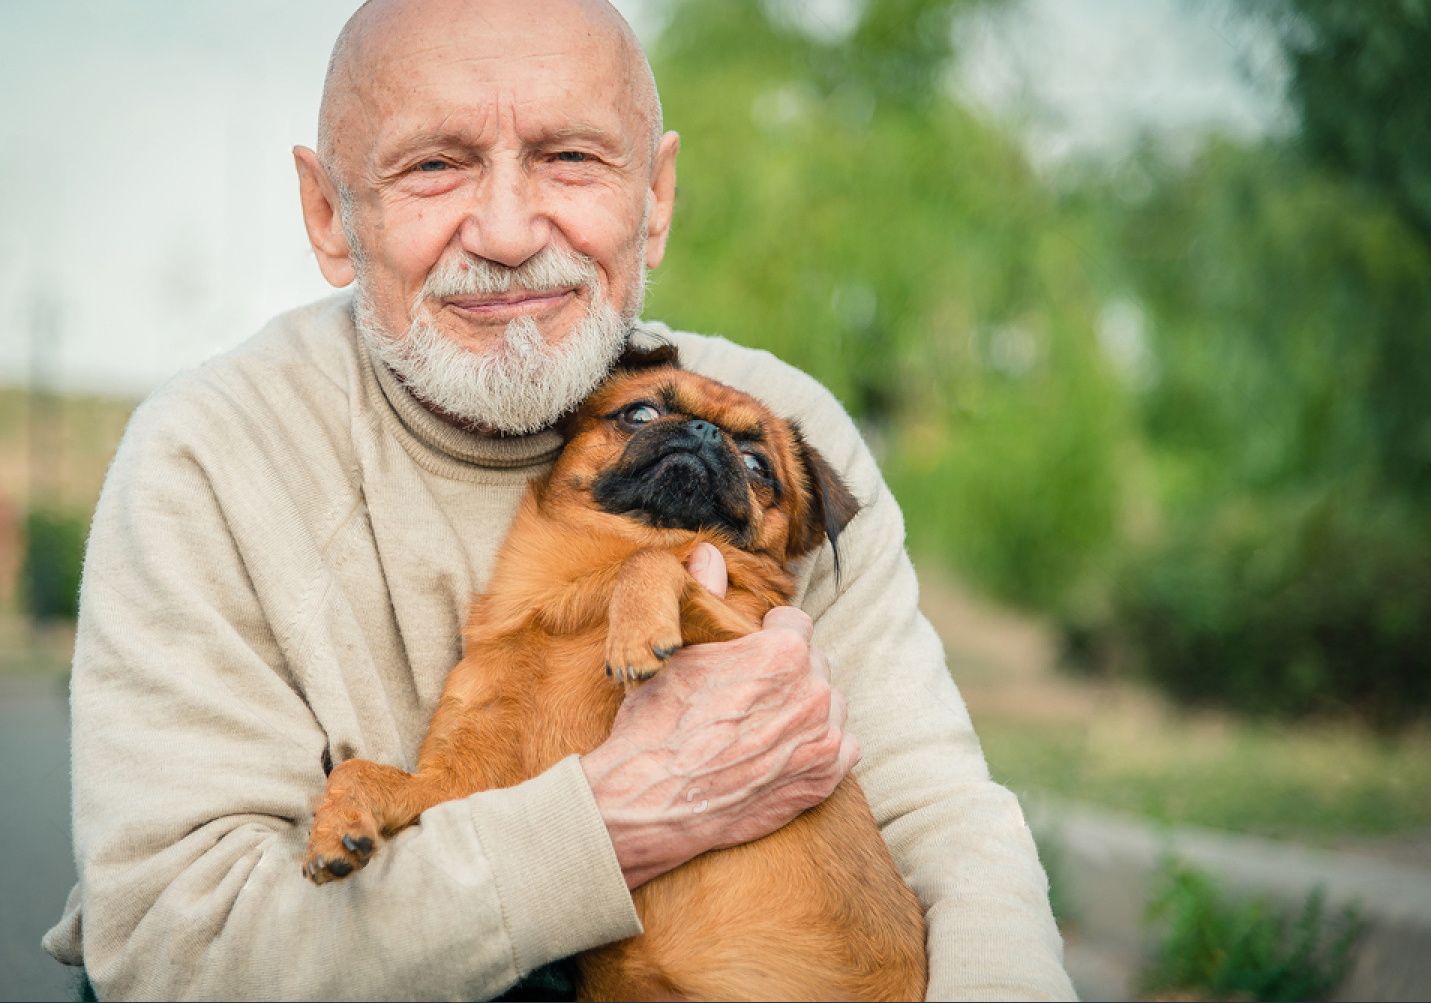 WHICH DOG BREEDS ARE BEST FOR OLDER PEOPLE?